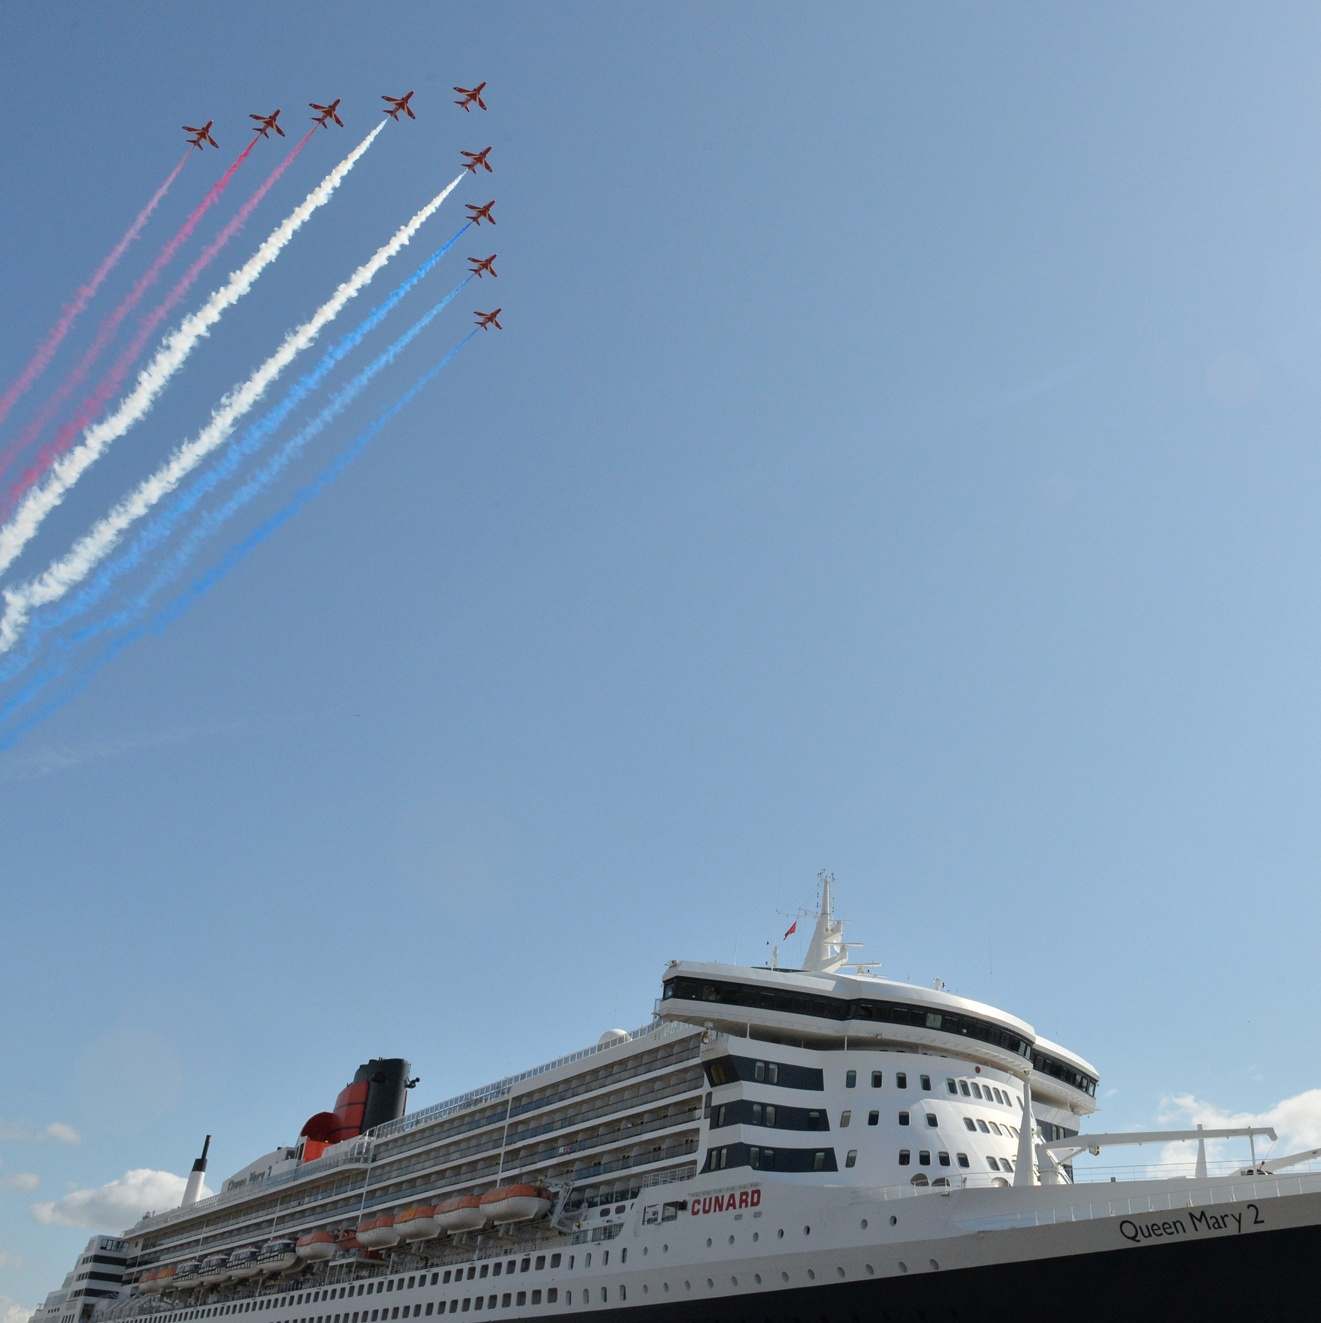 The Red Arrows glide over Cunard's Queen Mary 2